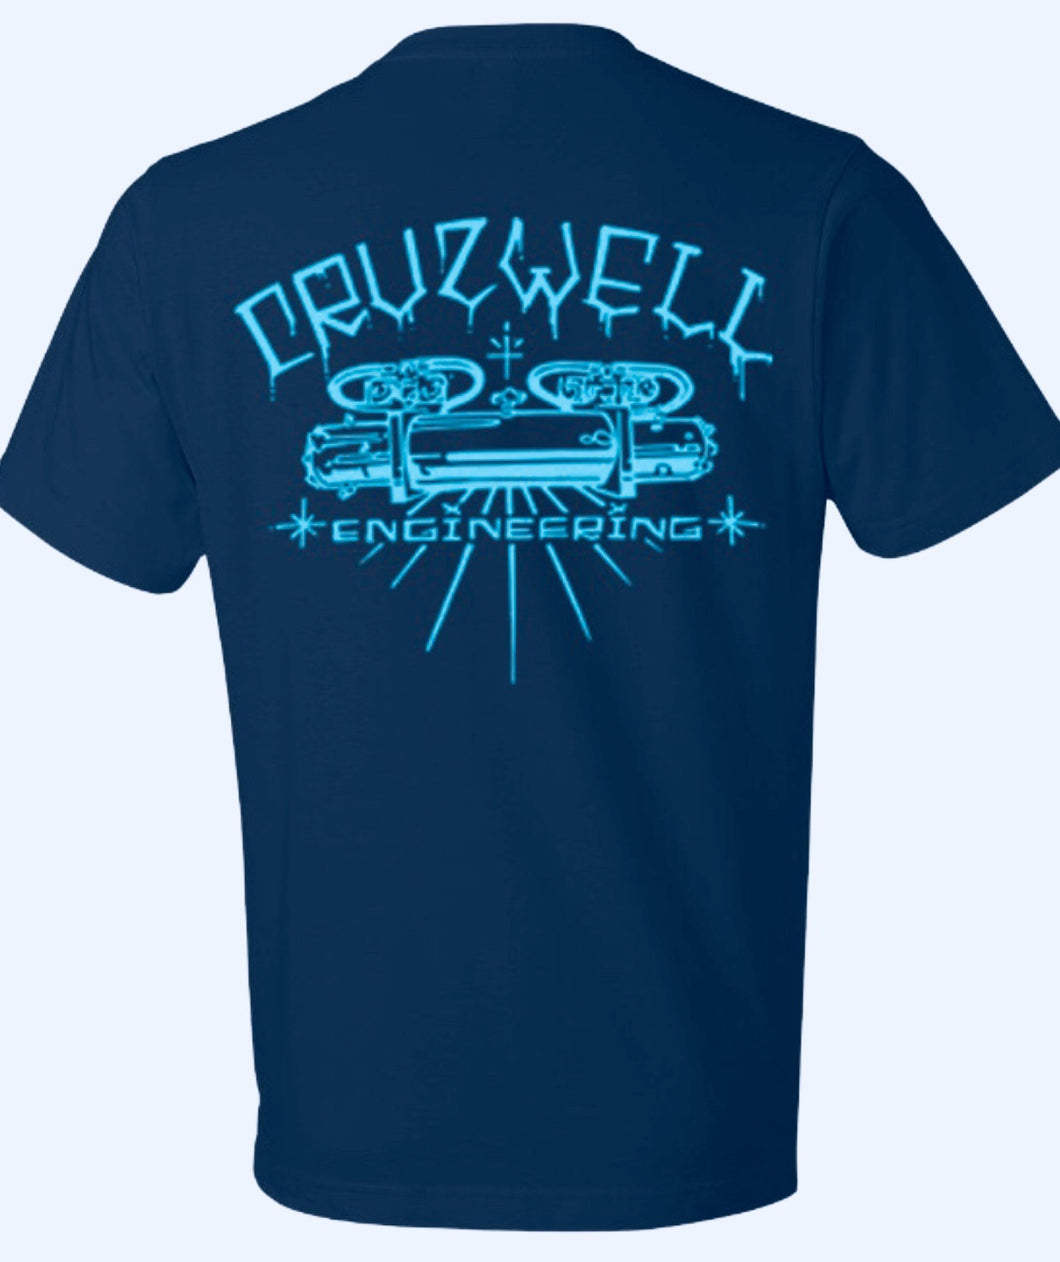 (NEW) Whammy tee - Cruzwell Mfg